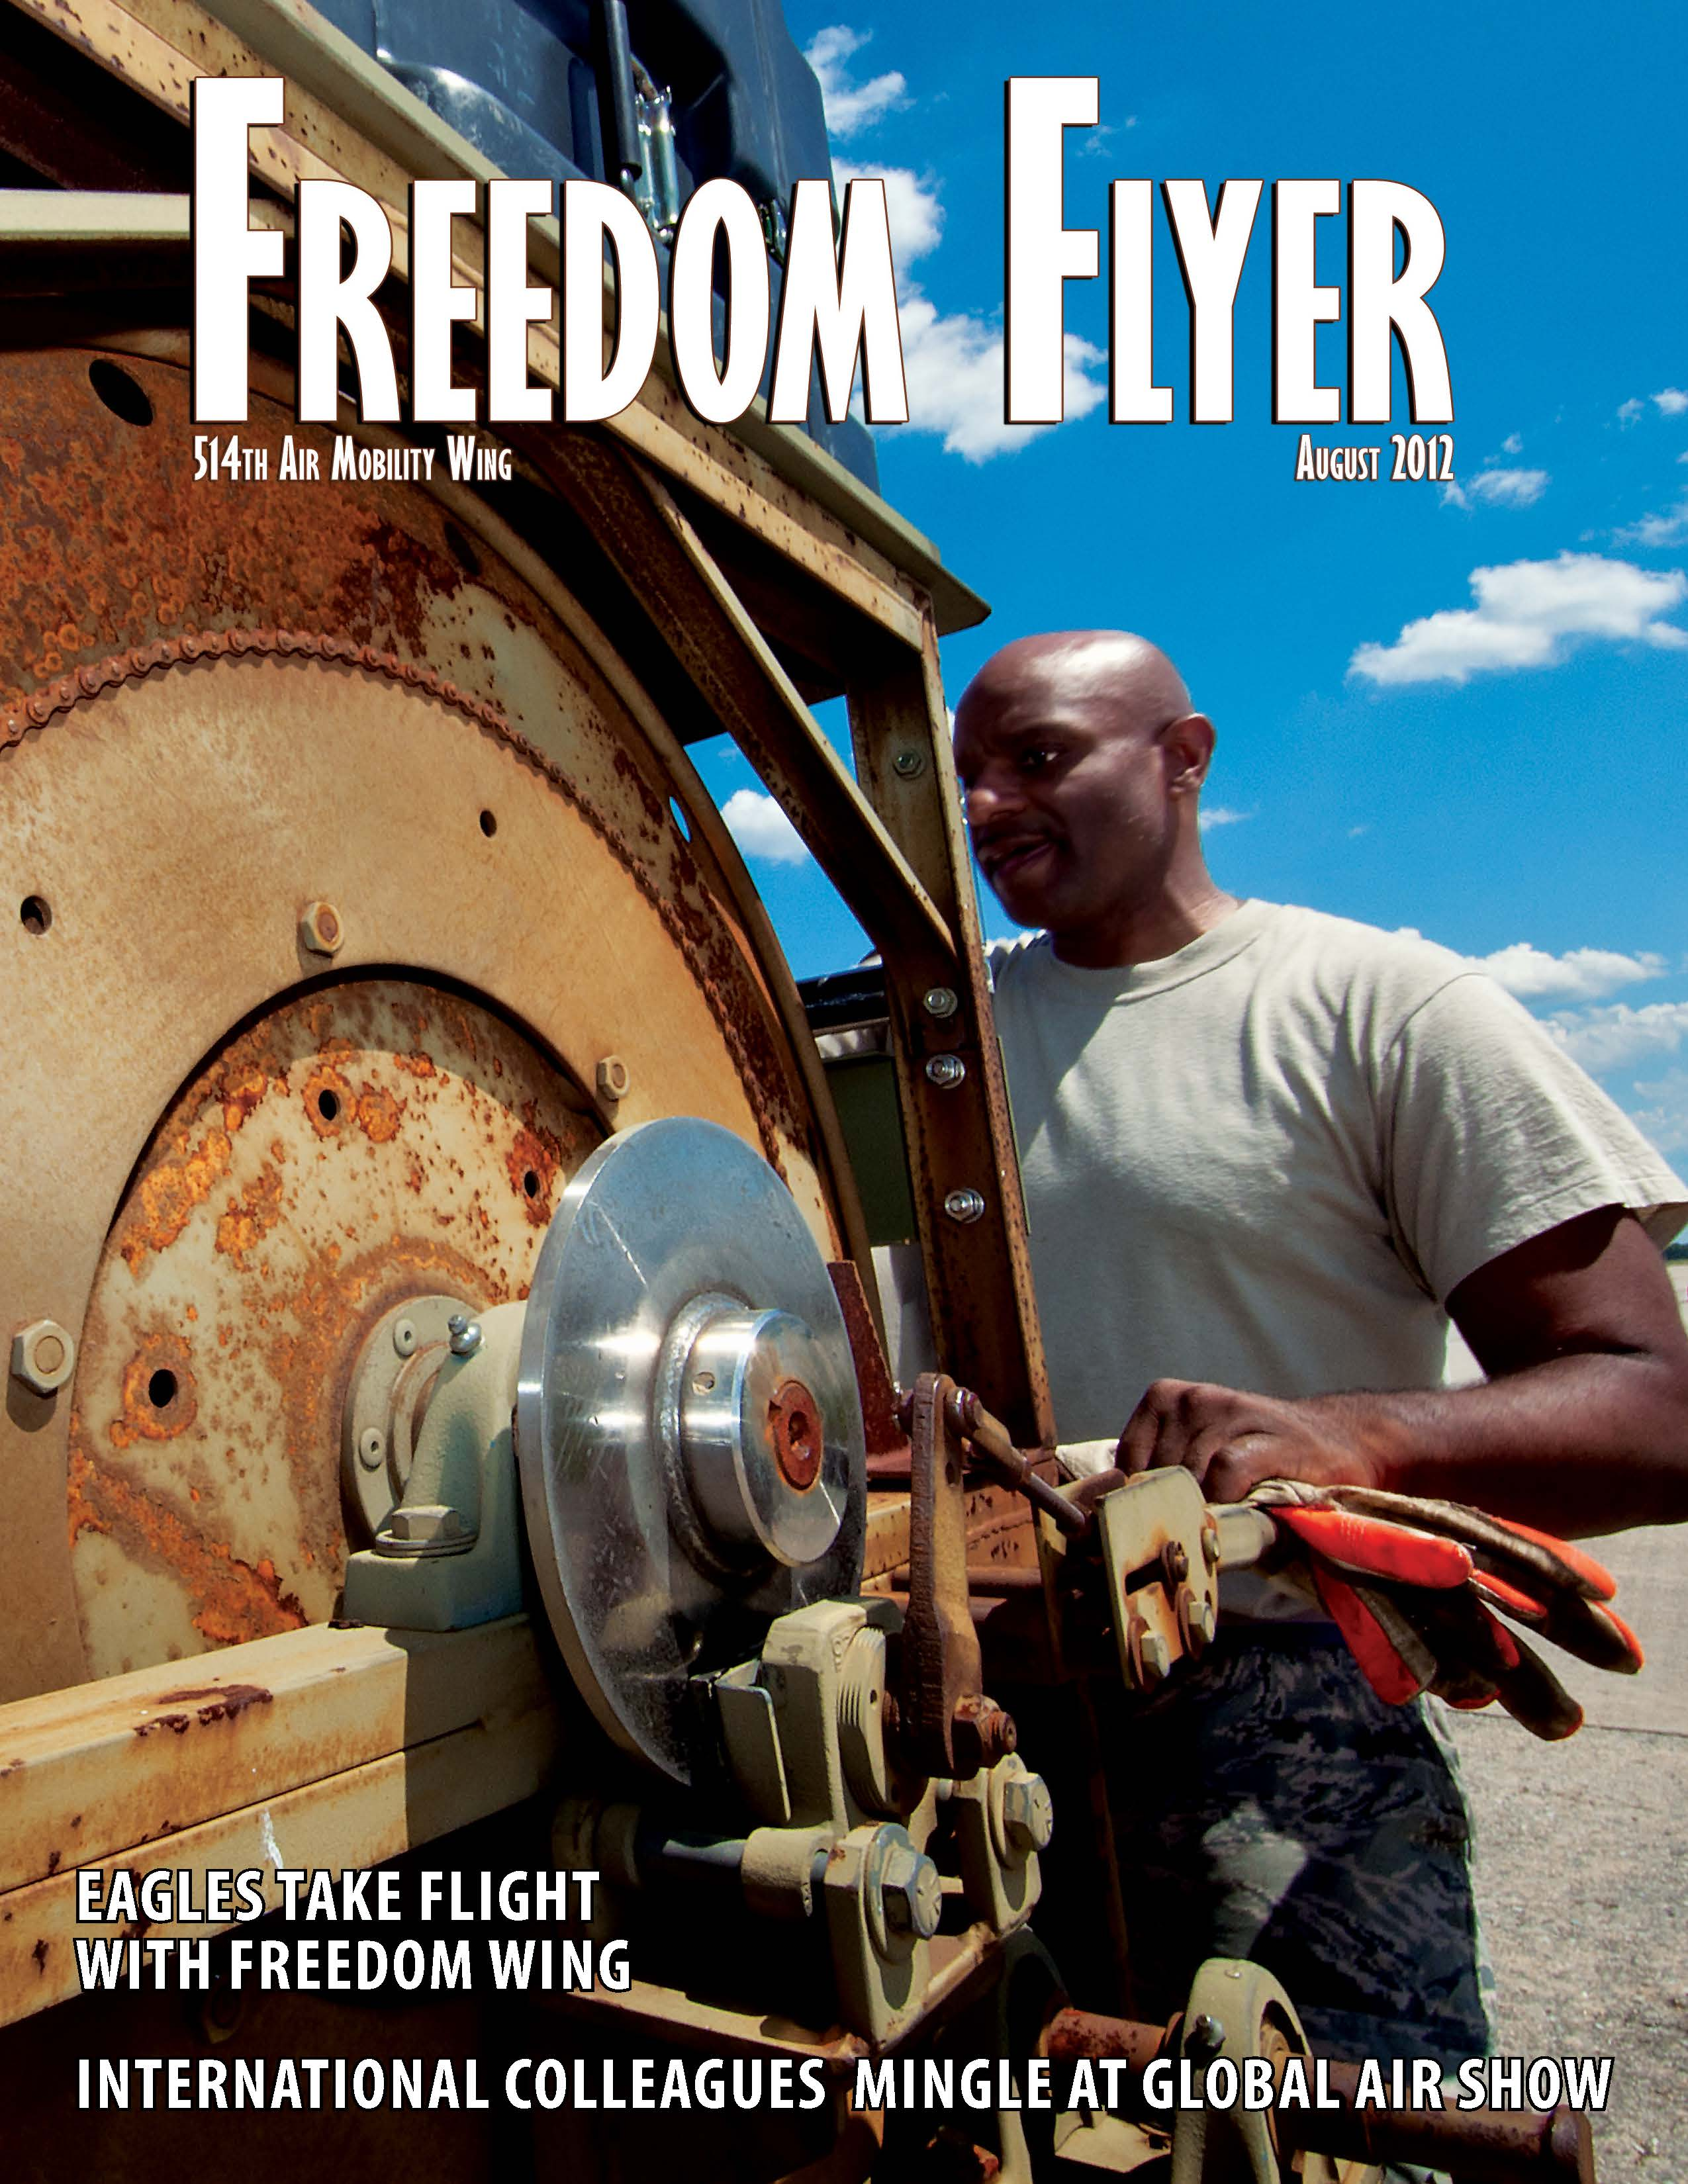 Freedom Flyer - August 2012